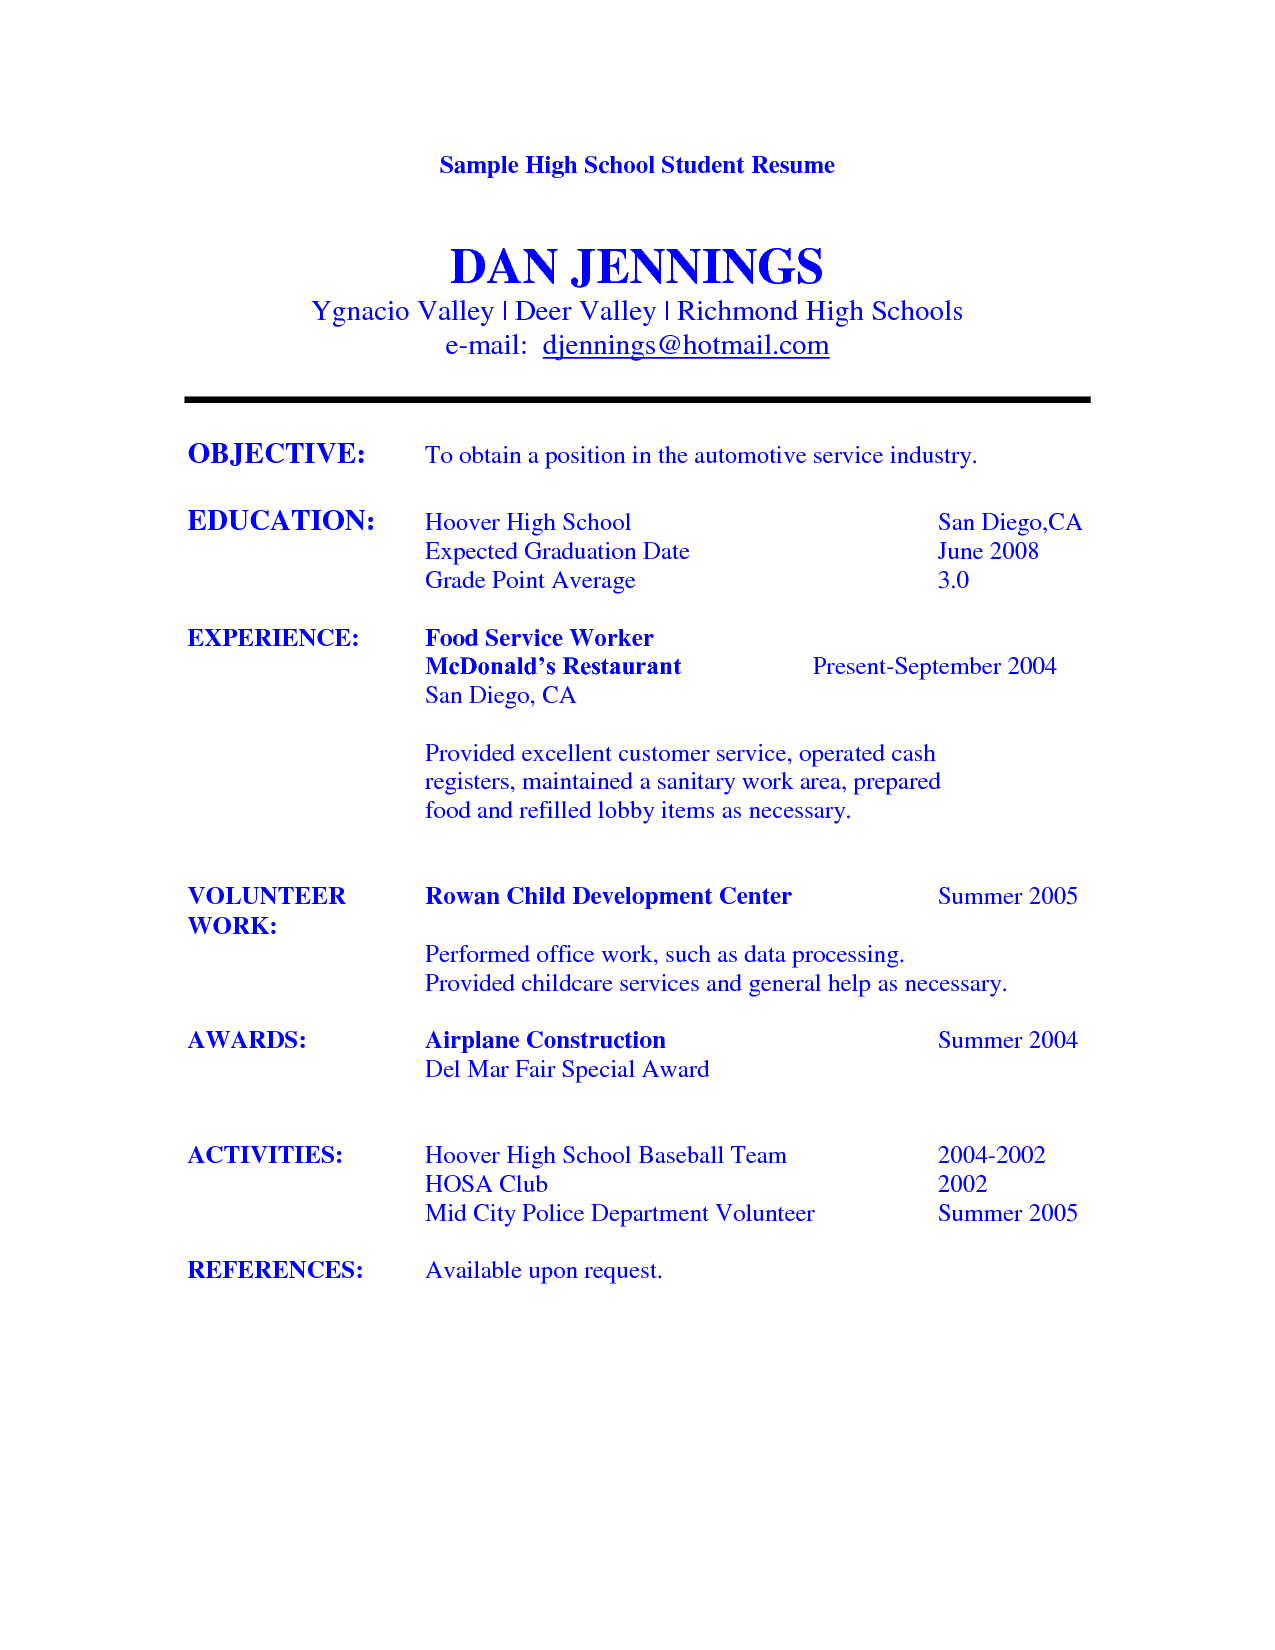 Resume For Highschool Students Resume Example For High School Student Sample Resumes  Httpwww